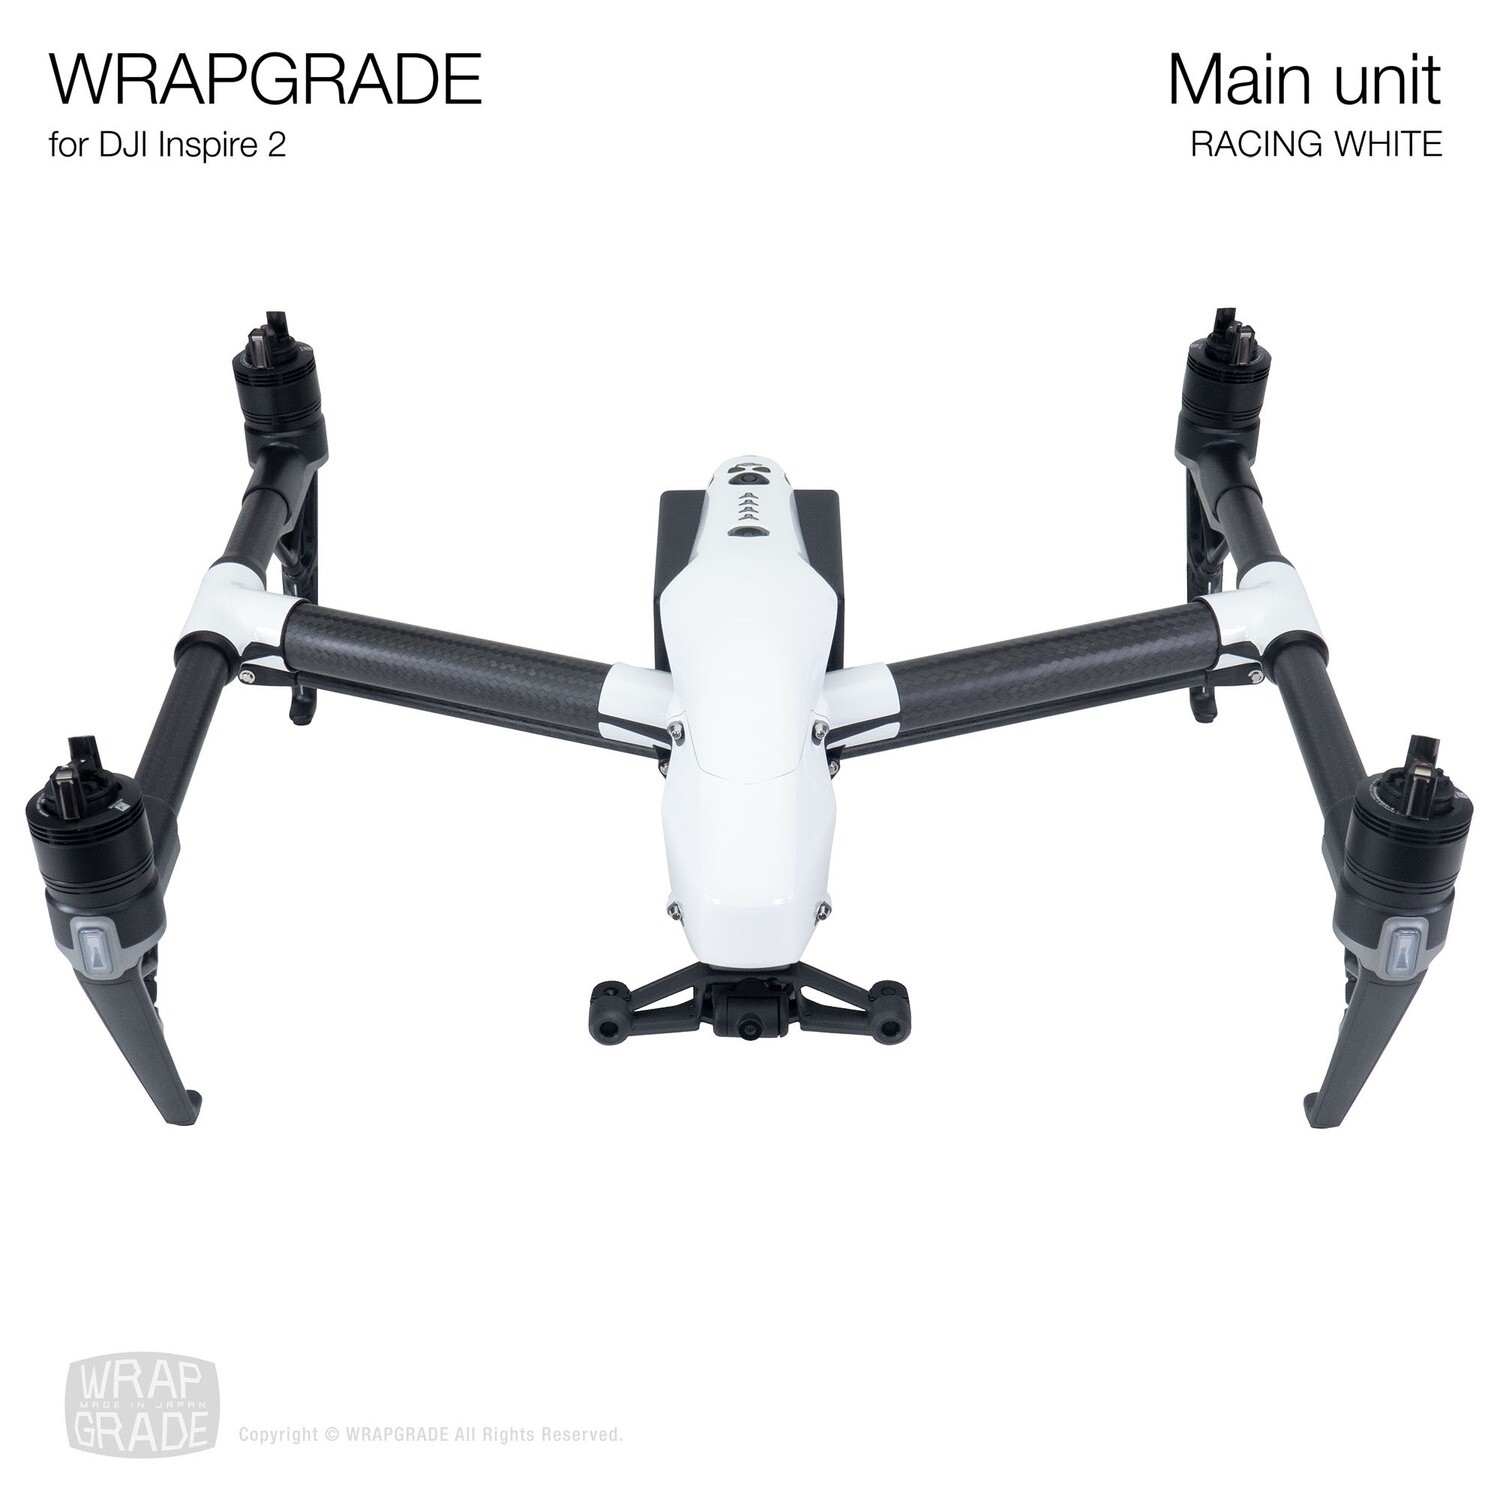 WRAPGRADE for DJI Inspire 2 | Main Unit (RACING WHITE)